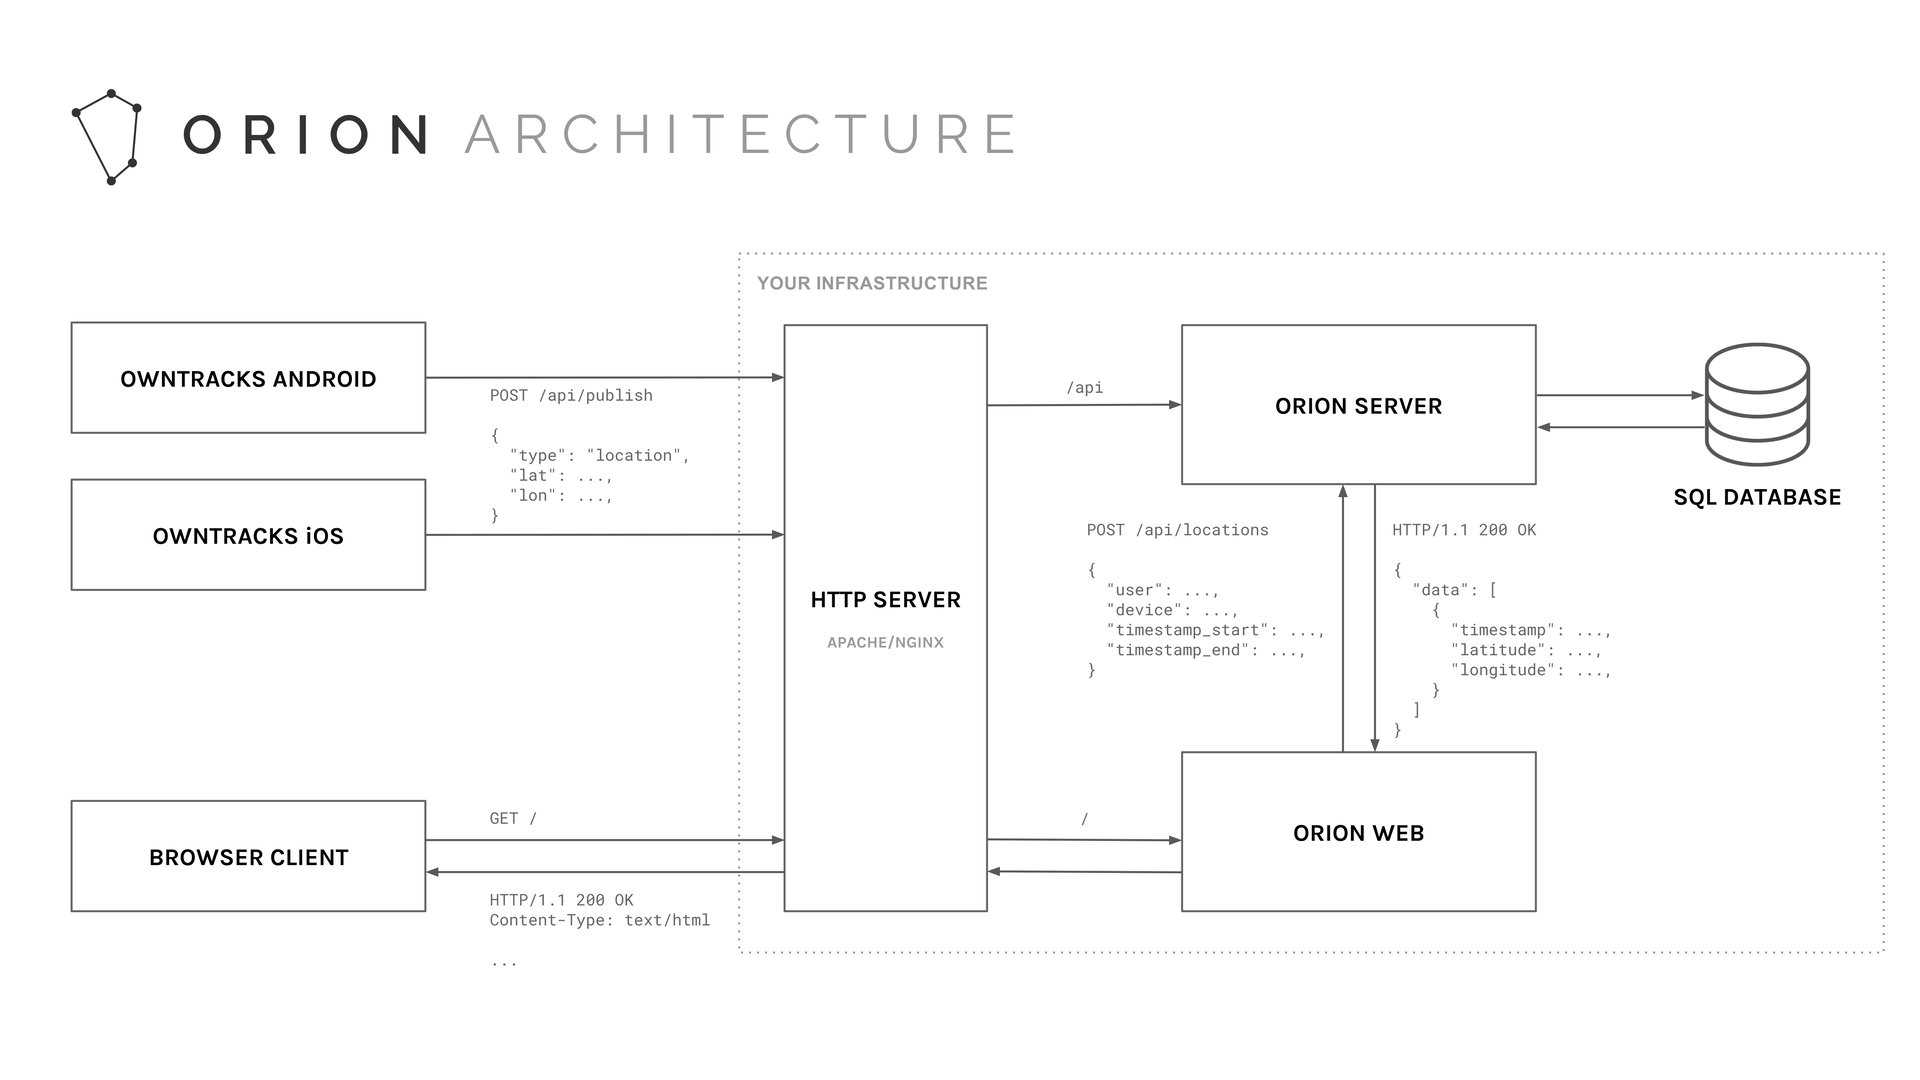 Orion architecture